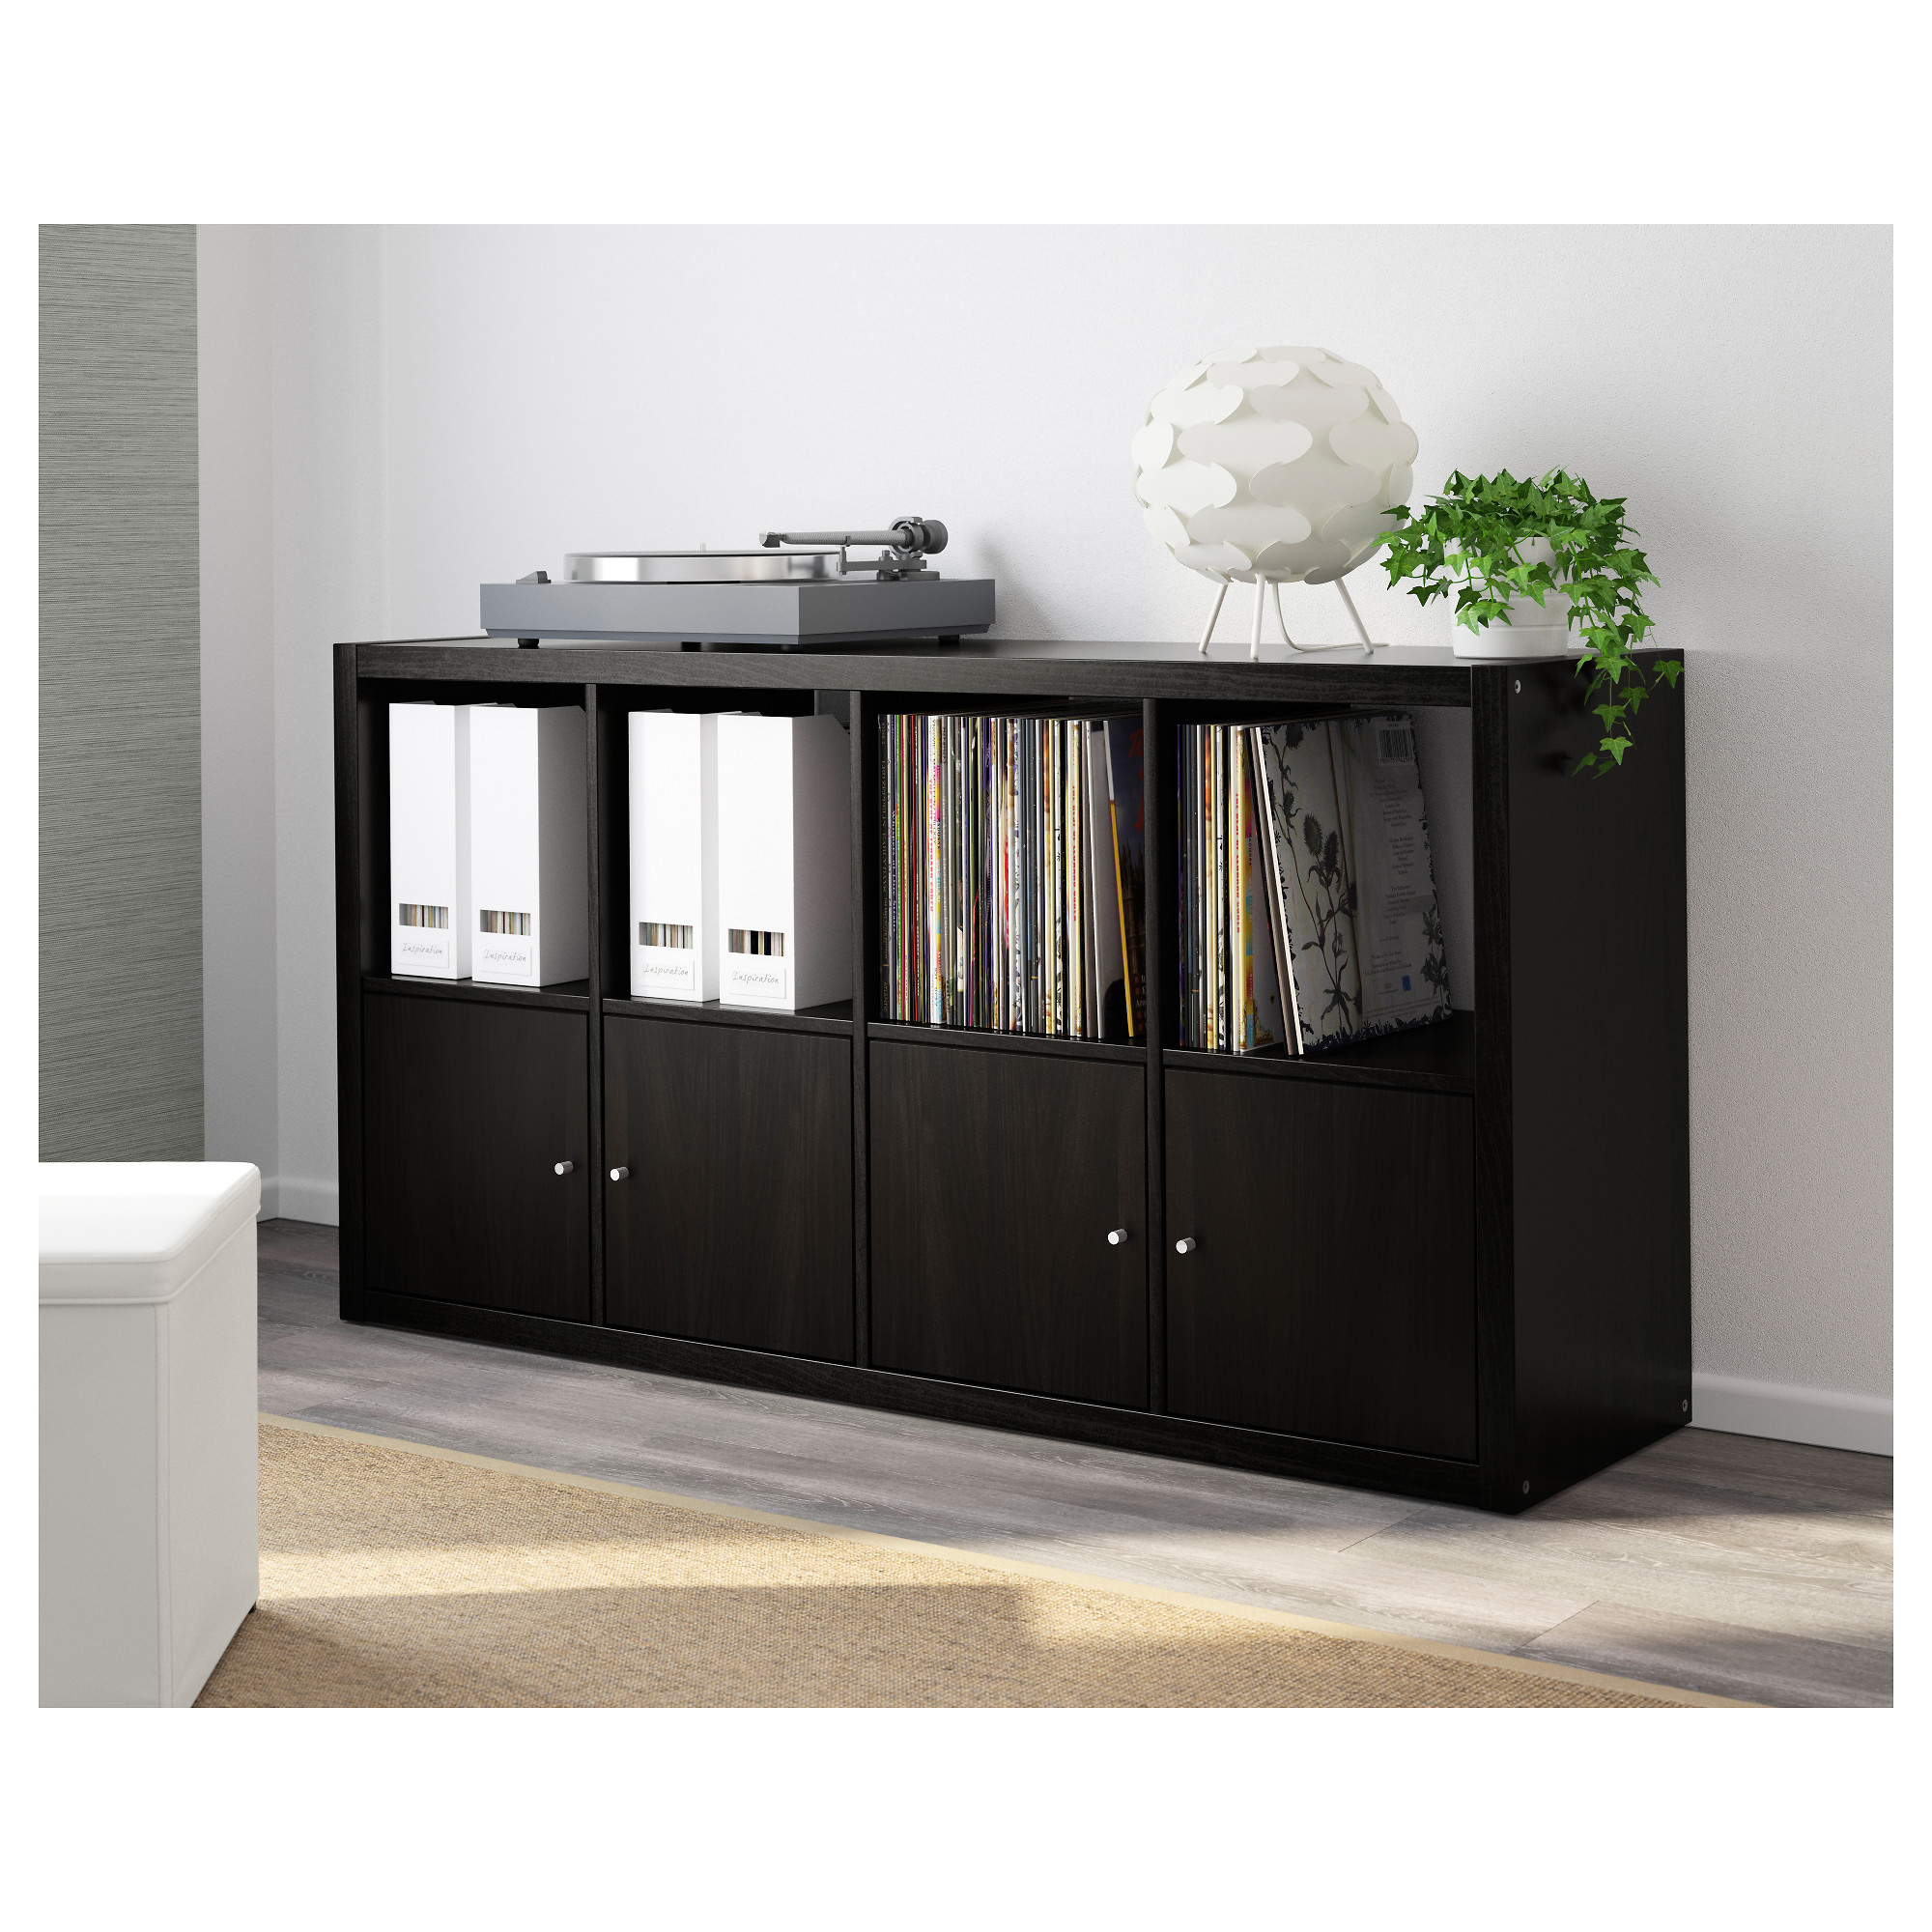 Ikea regal kallax 2x4  KALLAX Shelf unit - black-brown - IKEA